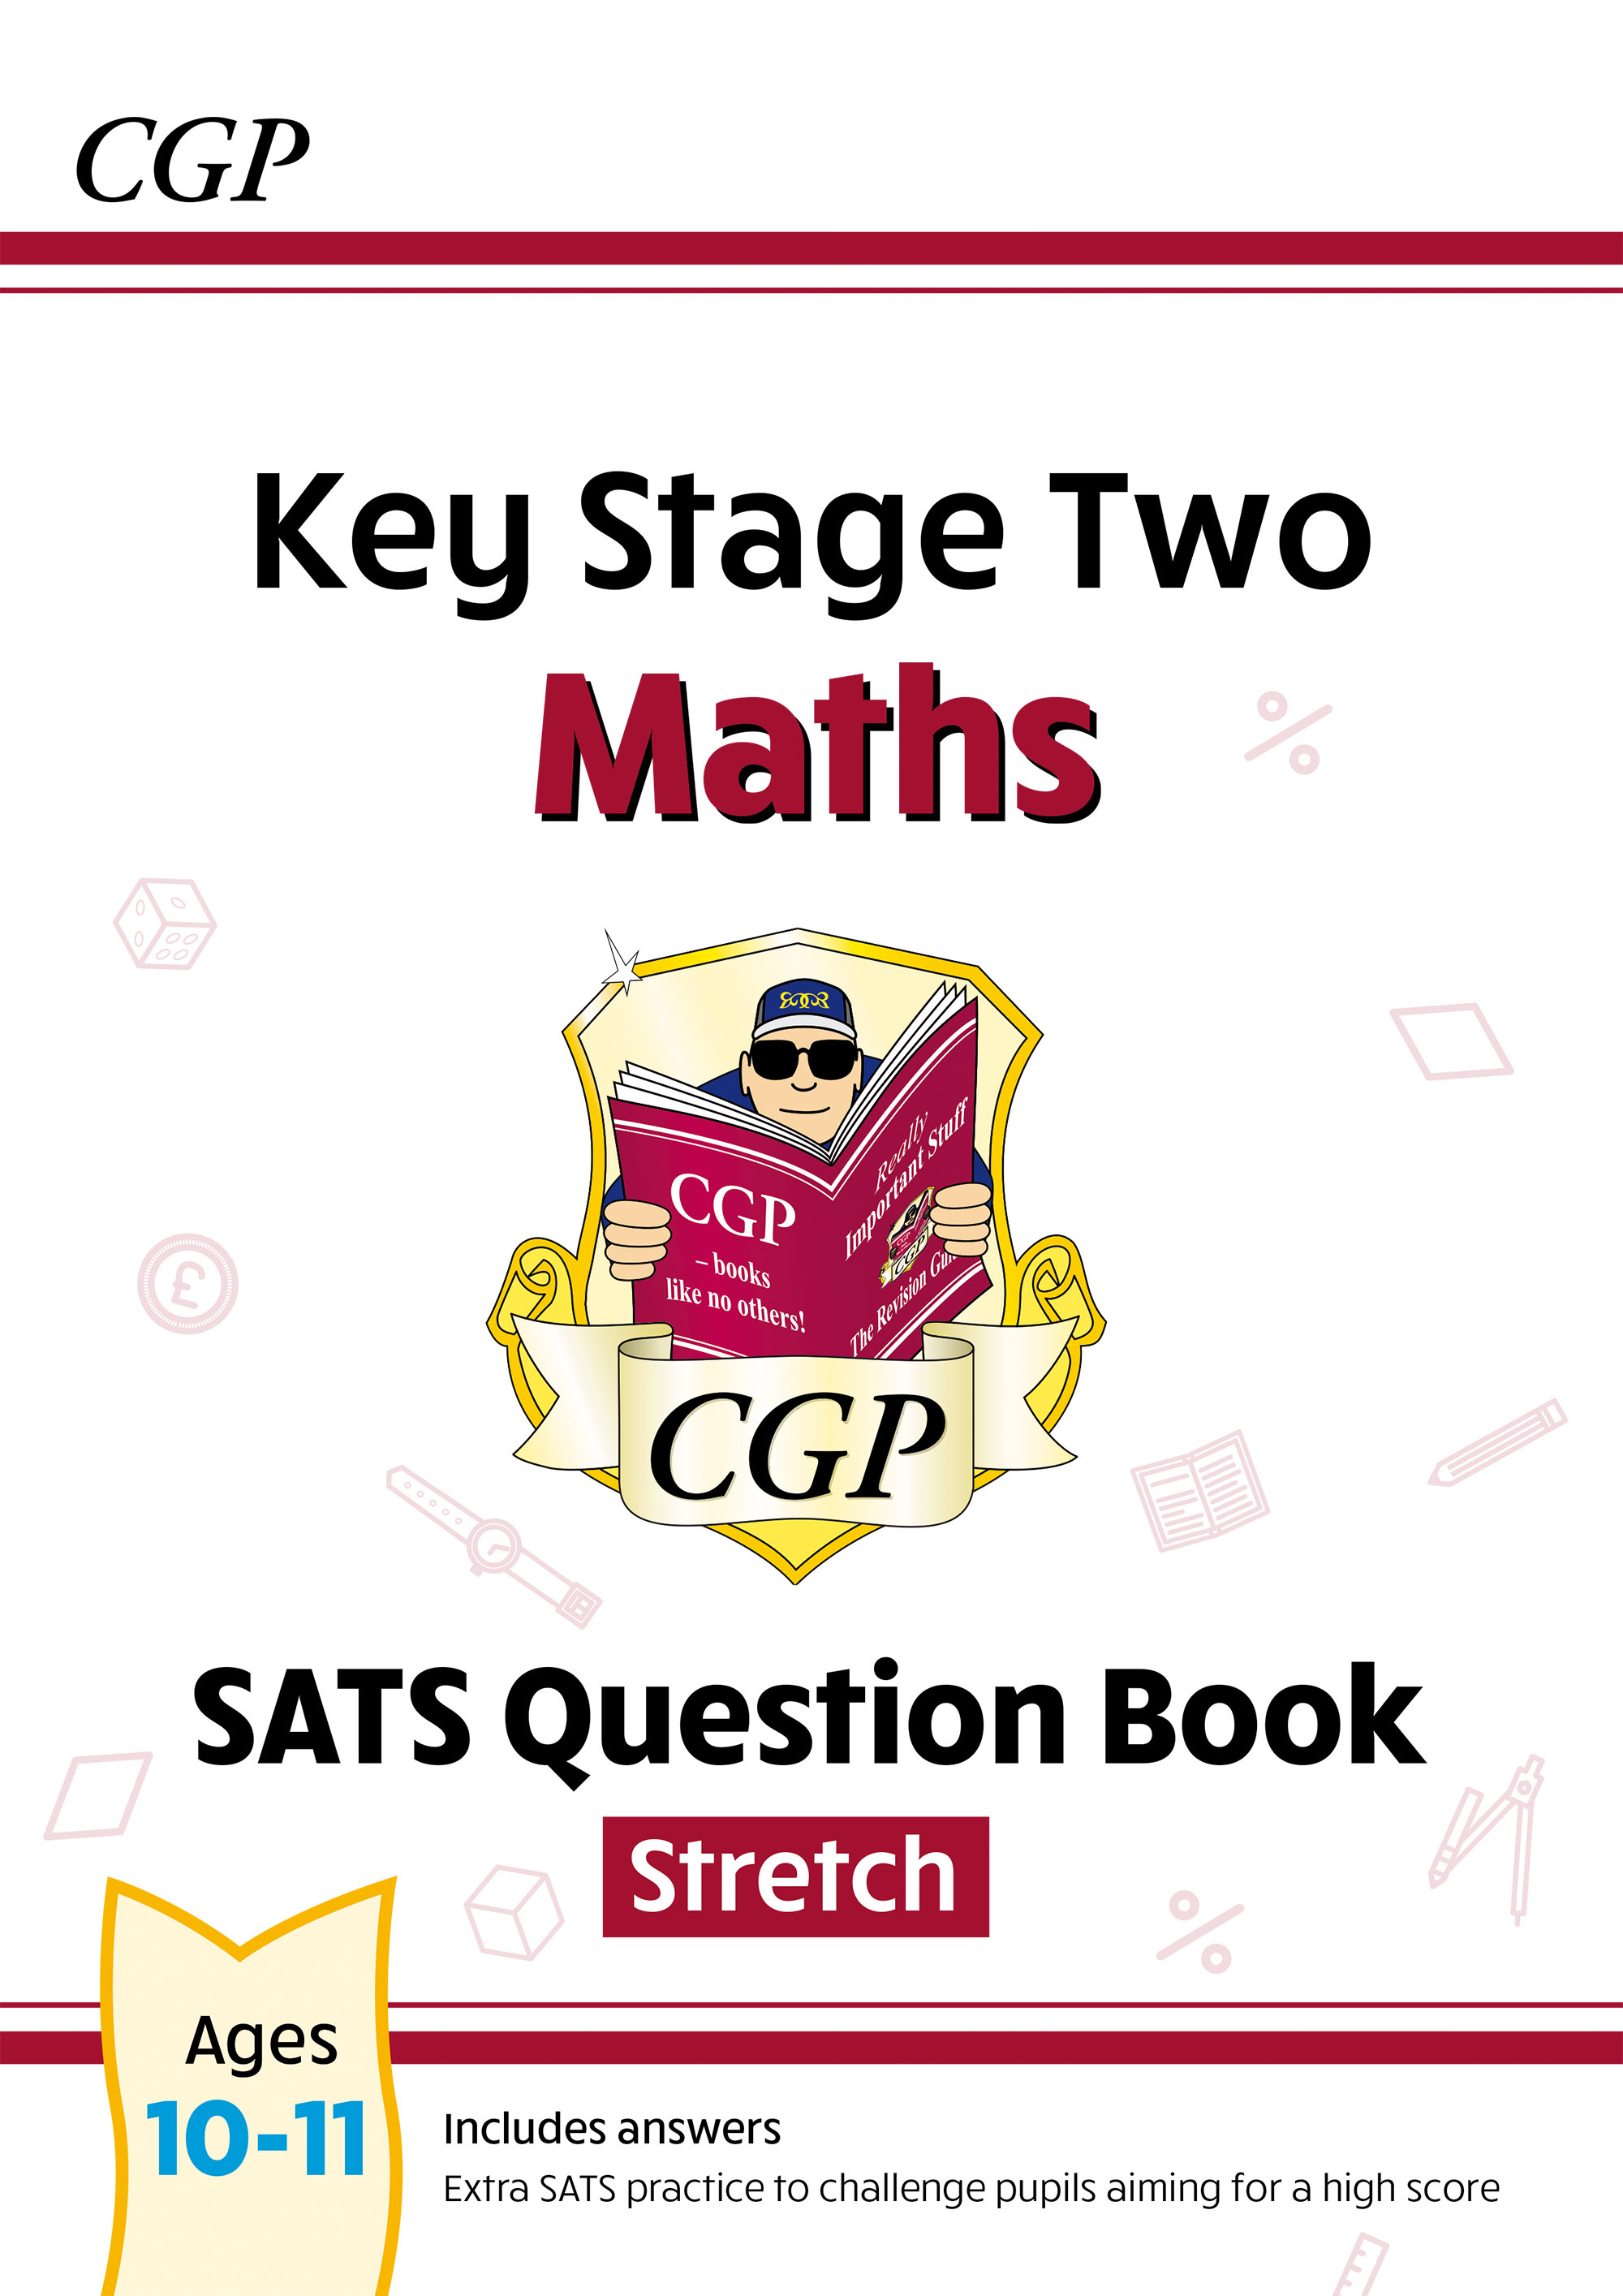 MLHW23D - New KS2 Maths SATS Question Book: Stretch - Ages 10-11 (for the 2021 tests) Online Edition